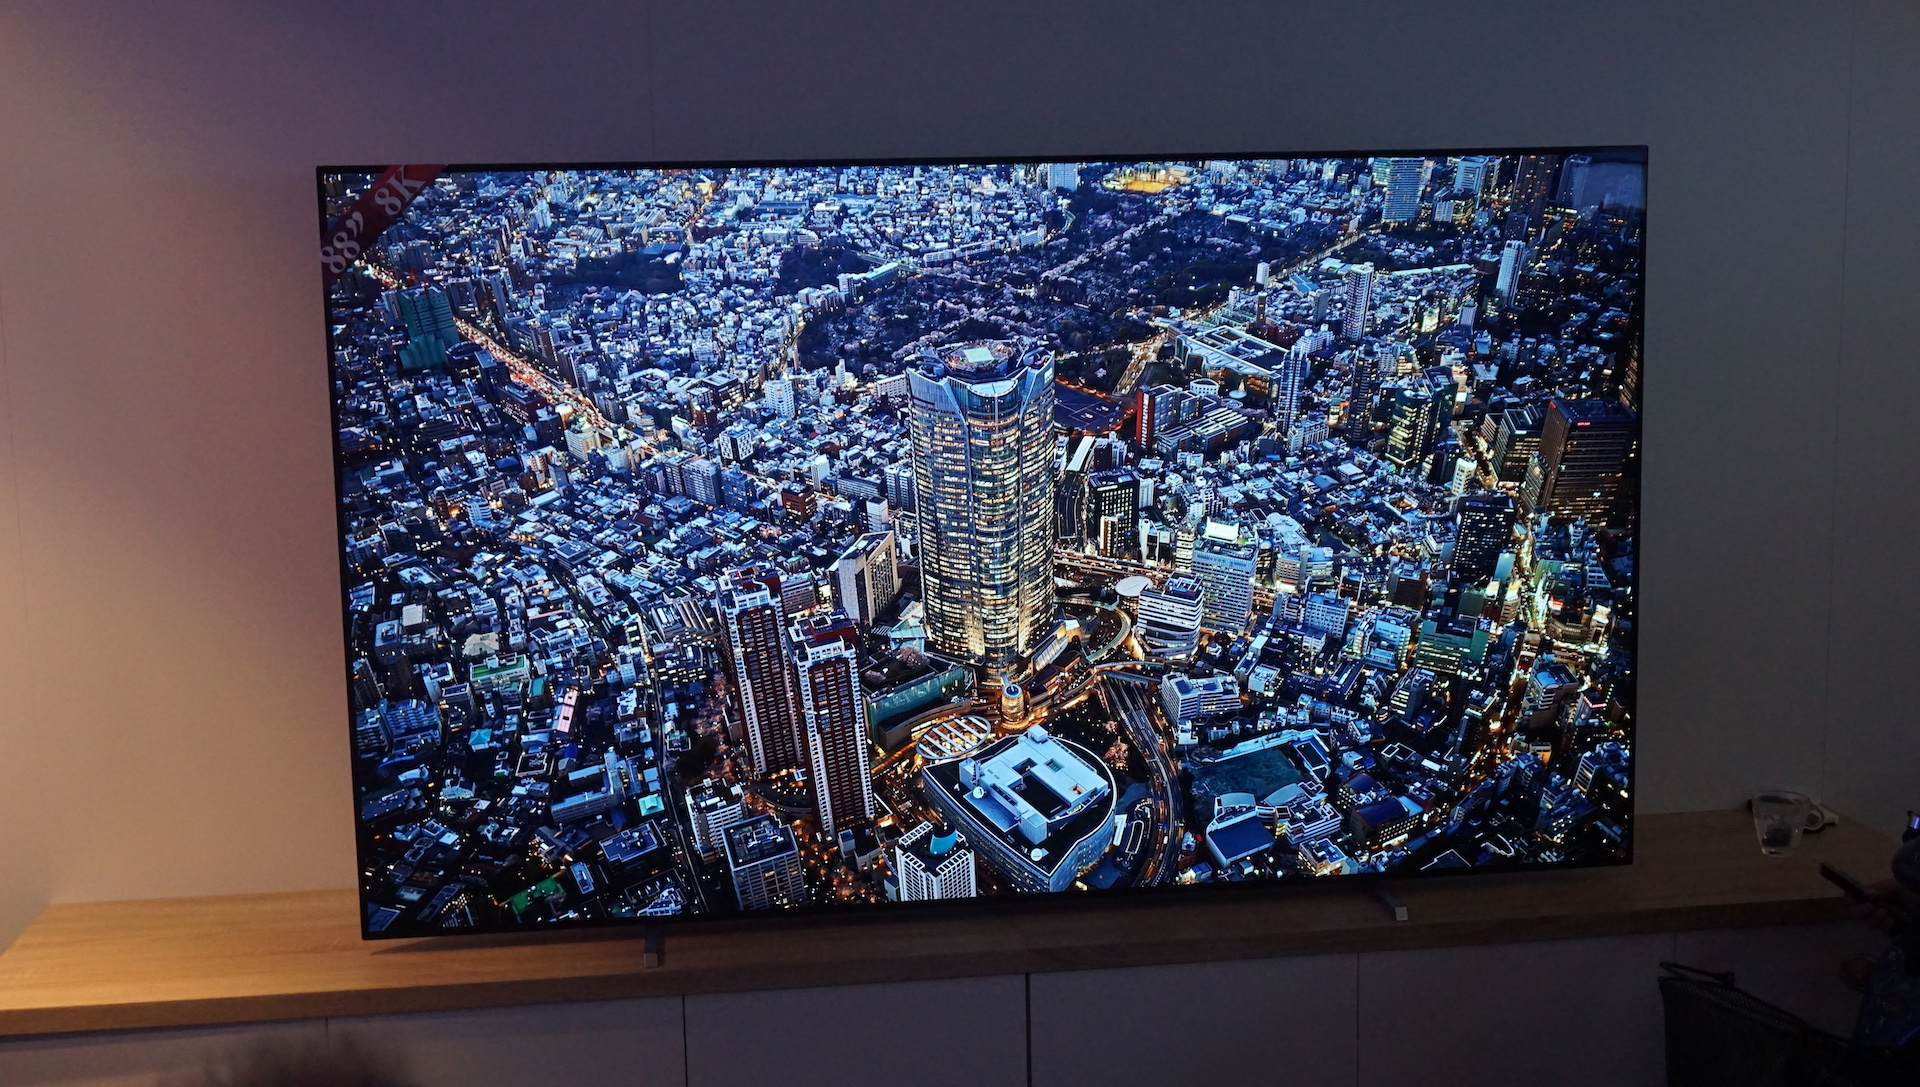 Philips has an 88-inch 8K OLED TV – but you can't buy it yet